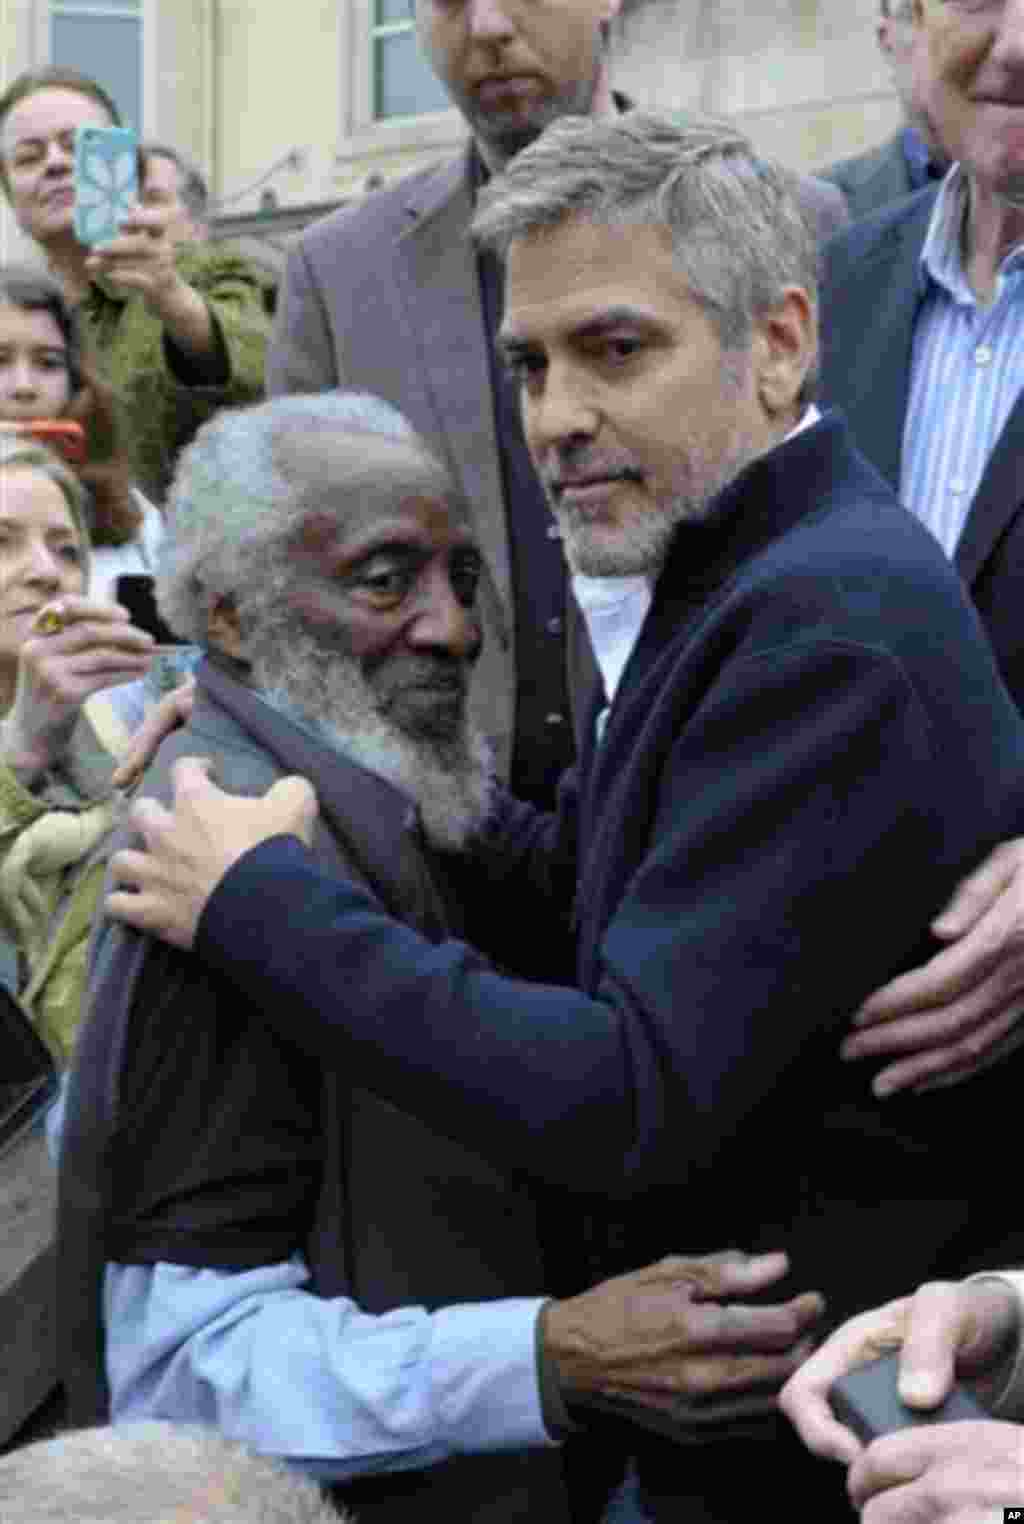 Actor George Clooney embraces activist Dick Gregory during a protest at the Sudan Embassy in Washington, Friday, March 16, 2012. The demonstrators are protesting the escalating humanitarian emergency in Sudan that threatens the lives of 500,000 people. (A